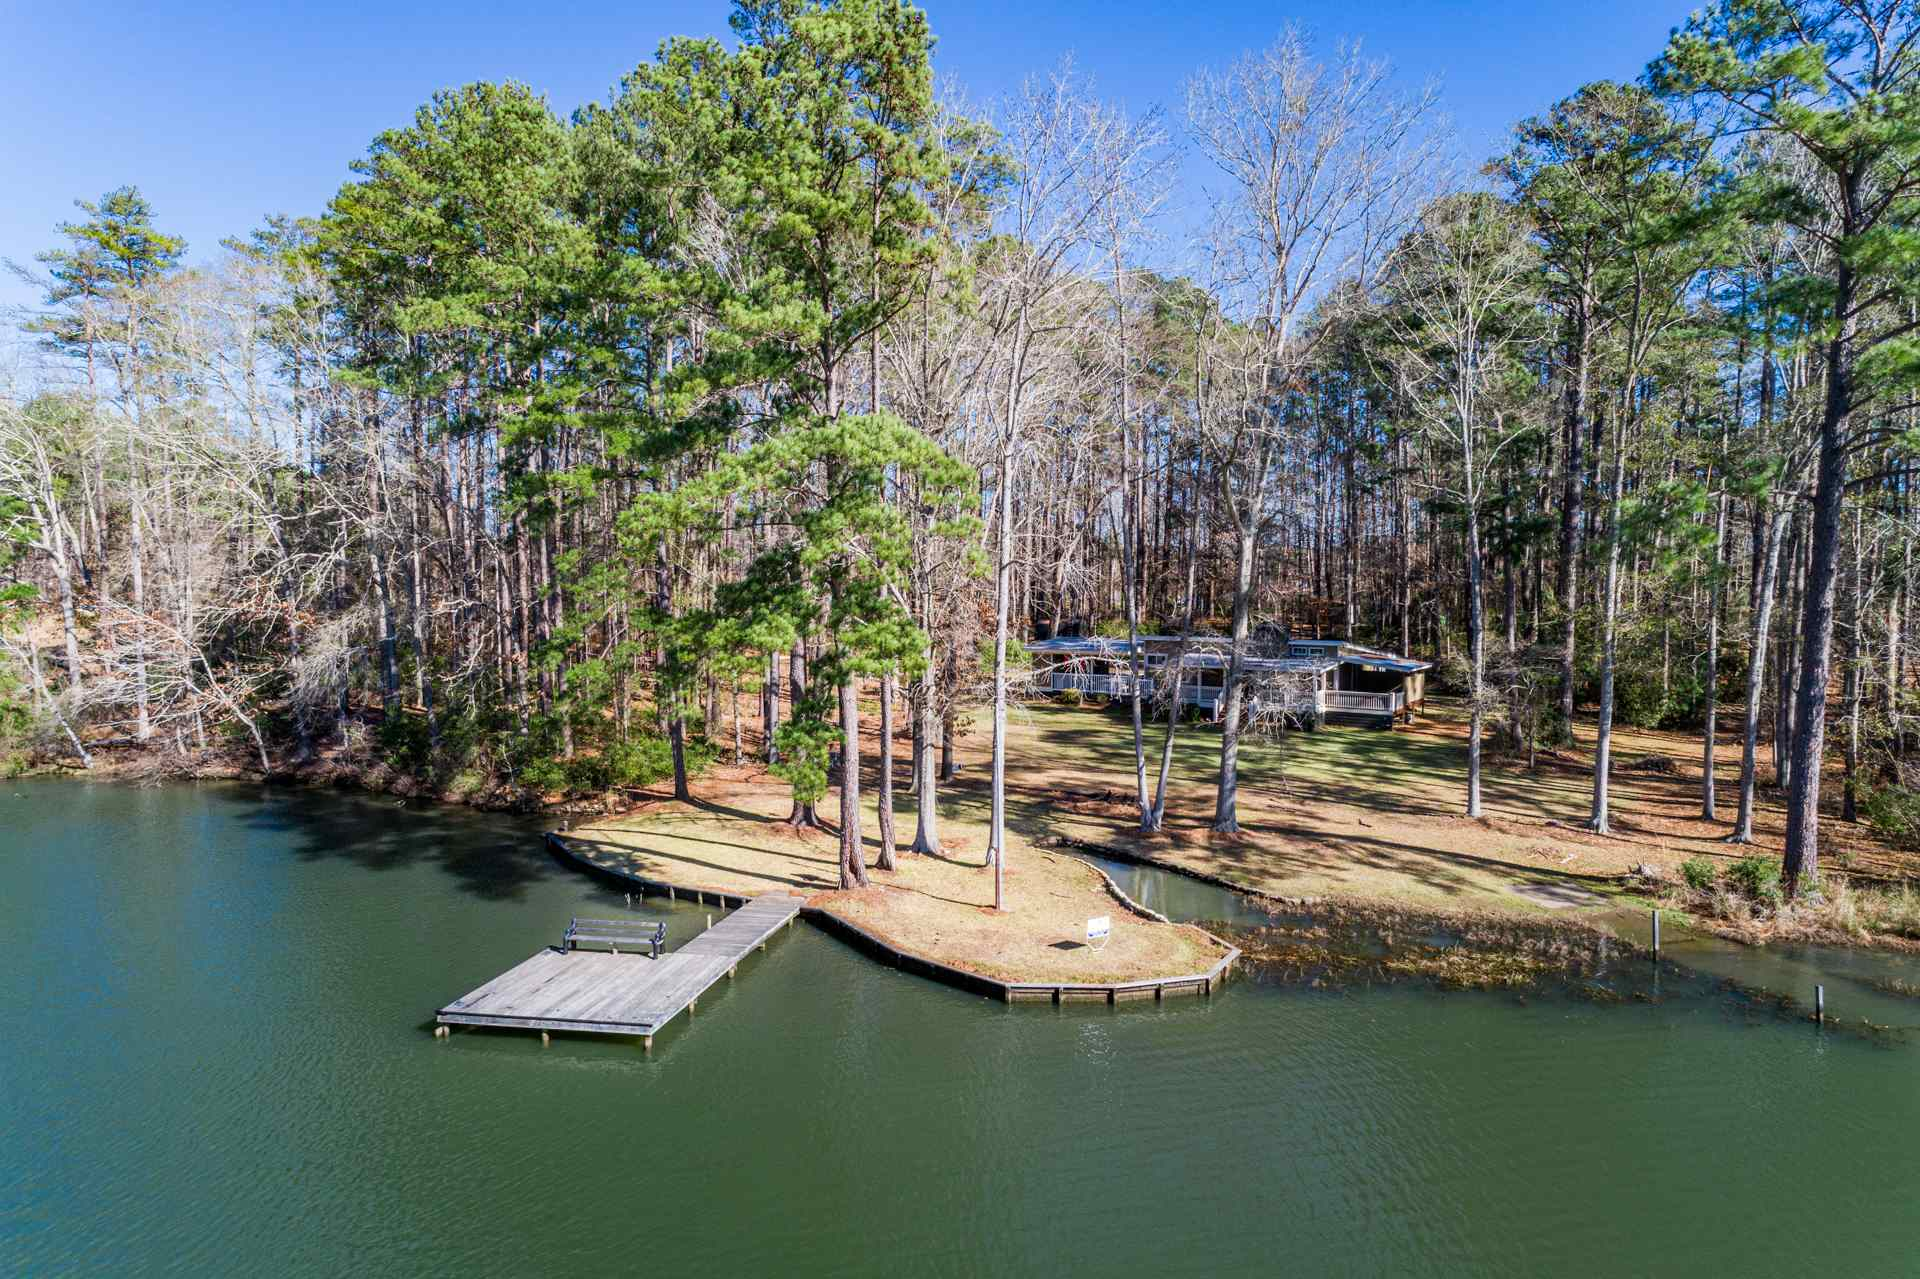 106 TWISTING HILL LANE, Lake Oconee, Georgia